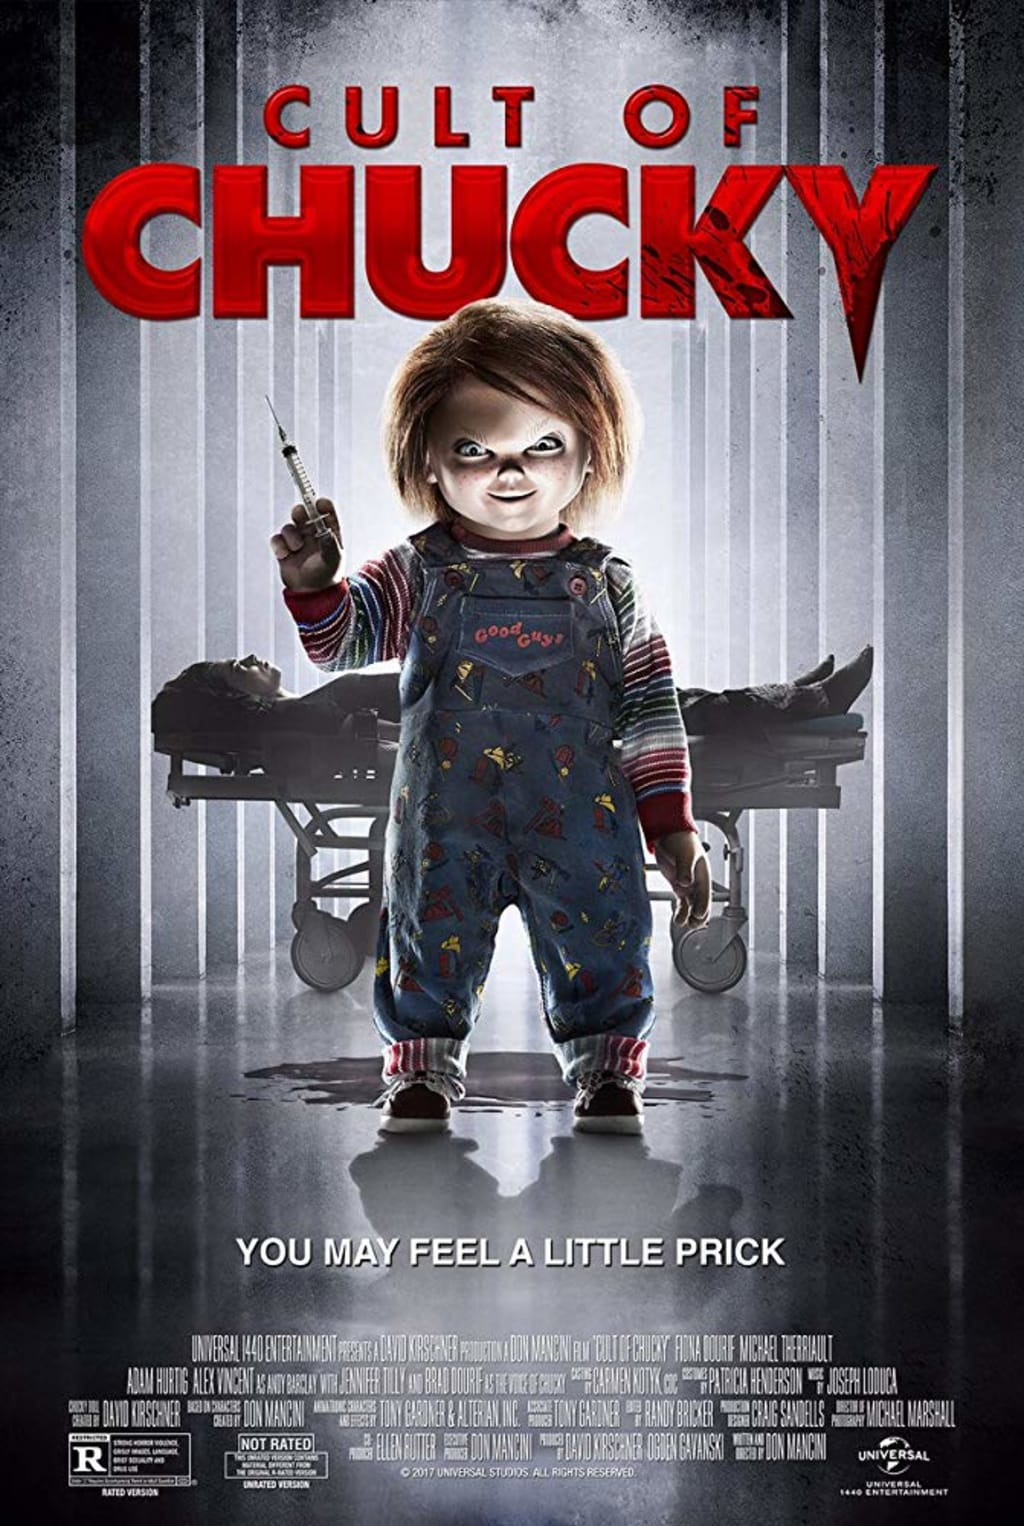 Reed Alexander's Horror Review of 'Cult of Chucky' (2017)